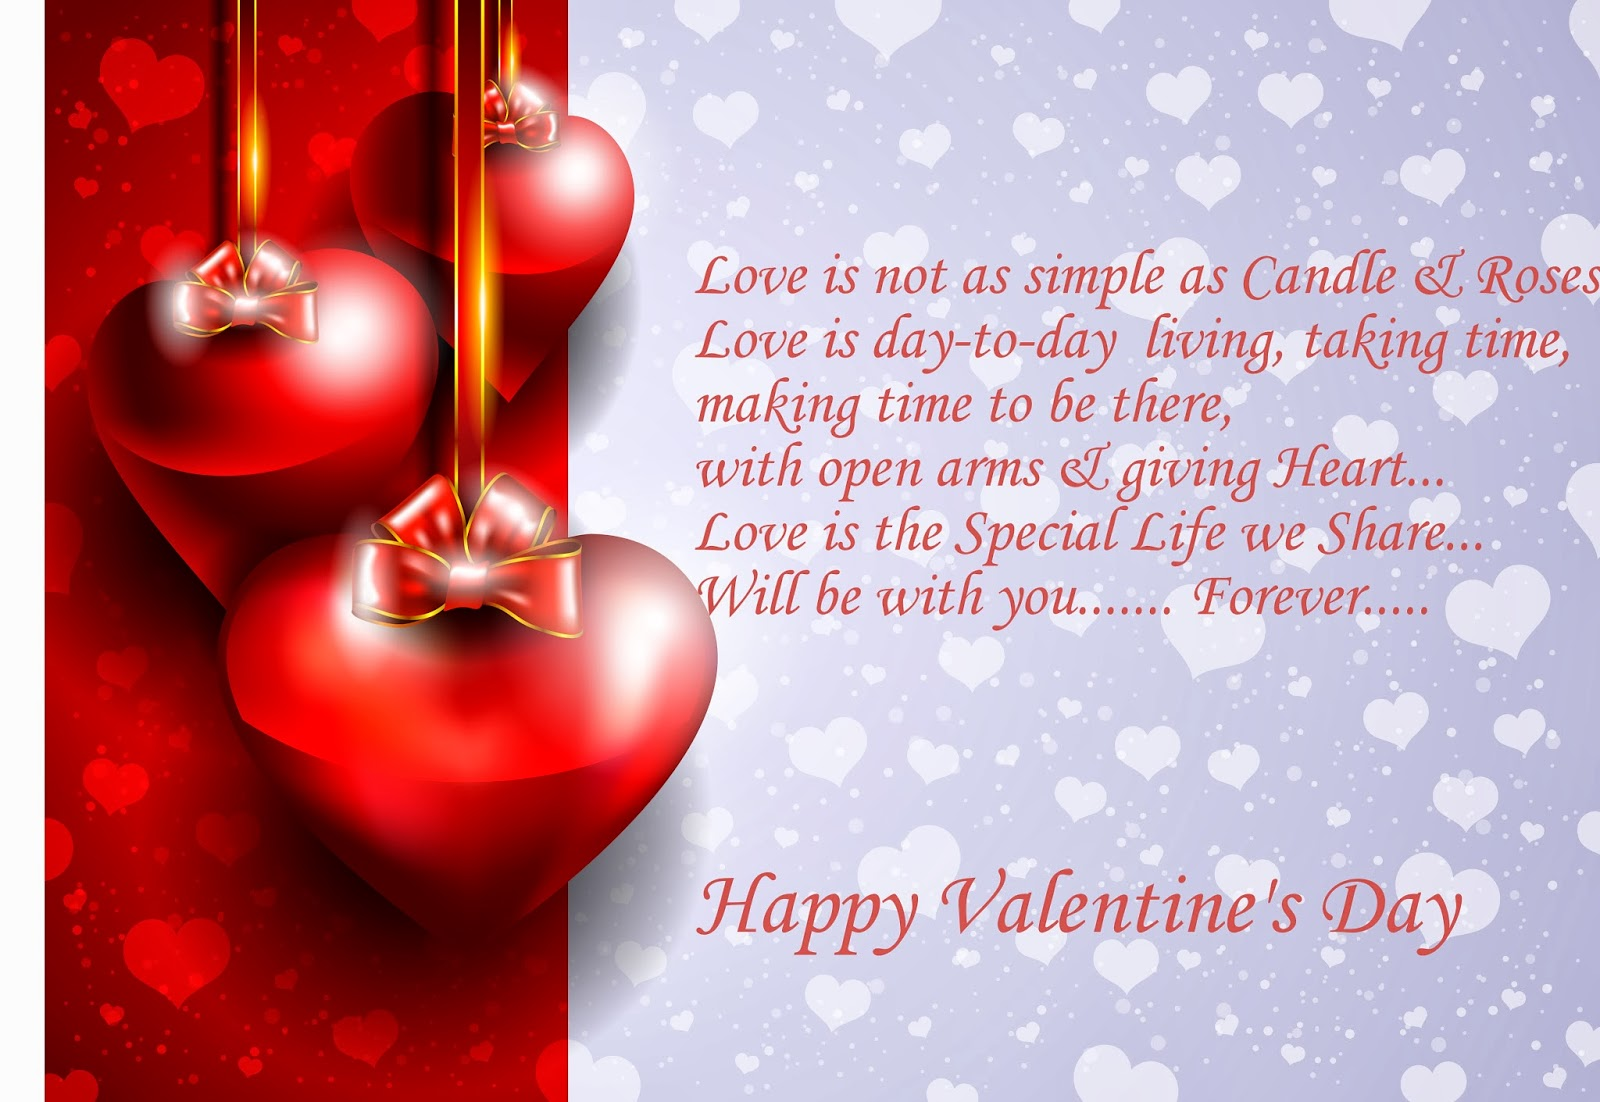 Happy funny valentines day messages for her boyfriend husband valentine day images for love m4hsunfo